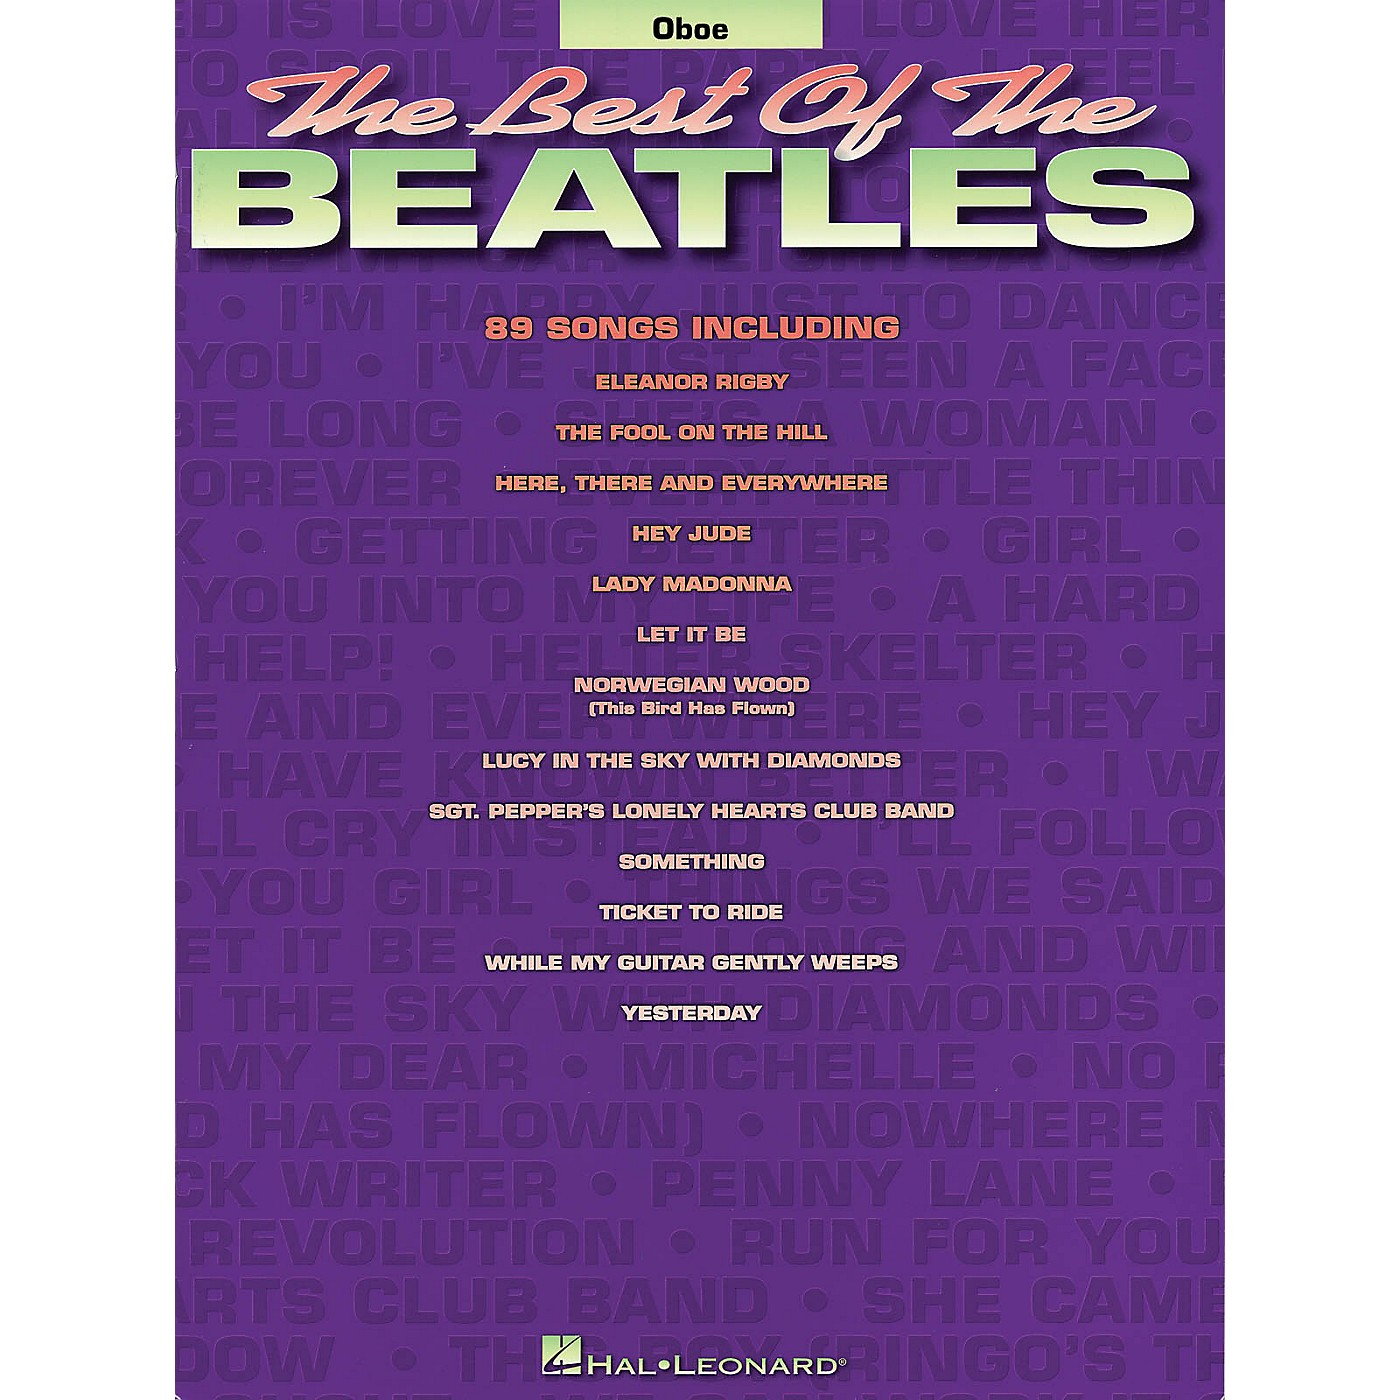 Hal Leonard Best of the Beatles for Oboe Chart Series Book Performed by The Beatles thumbnail